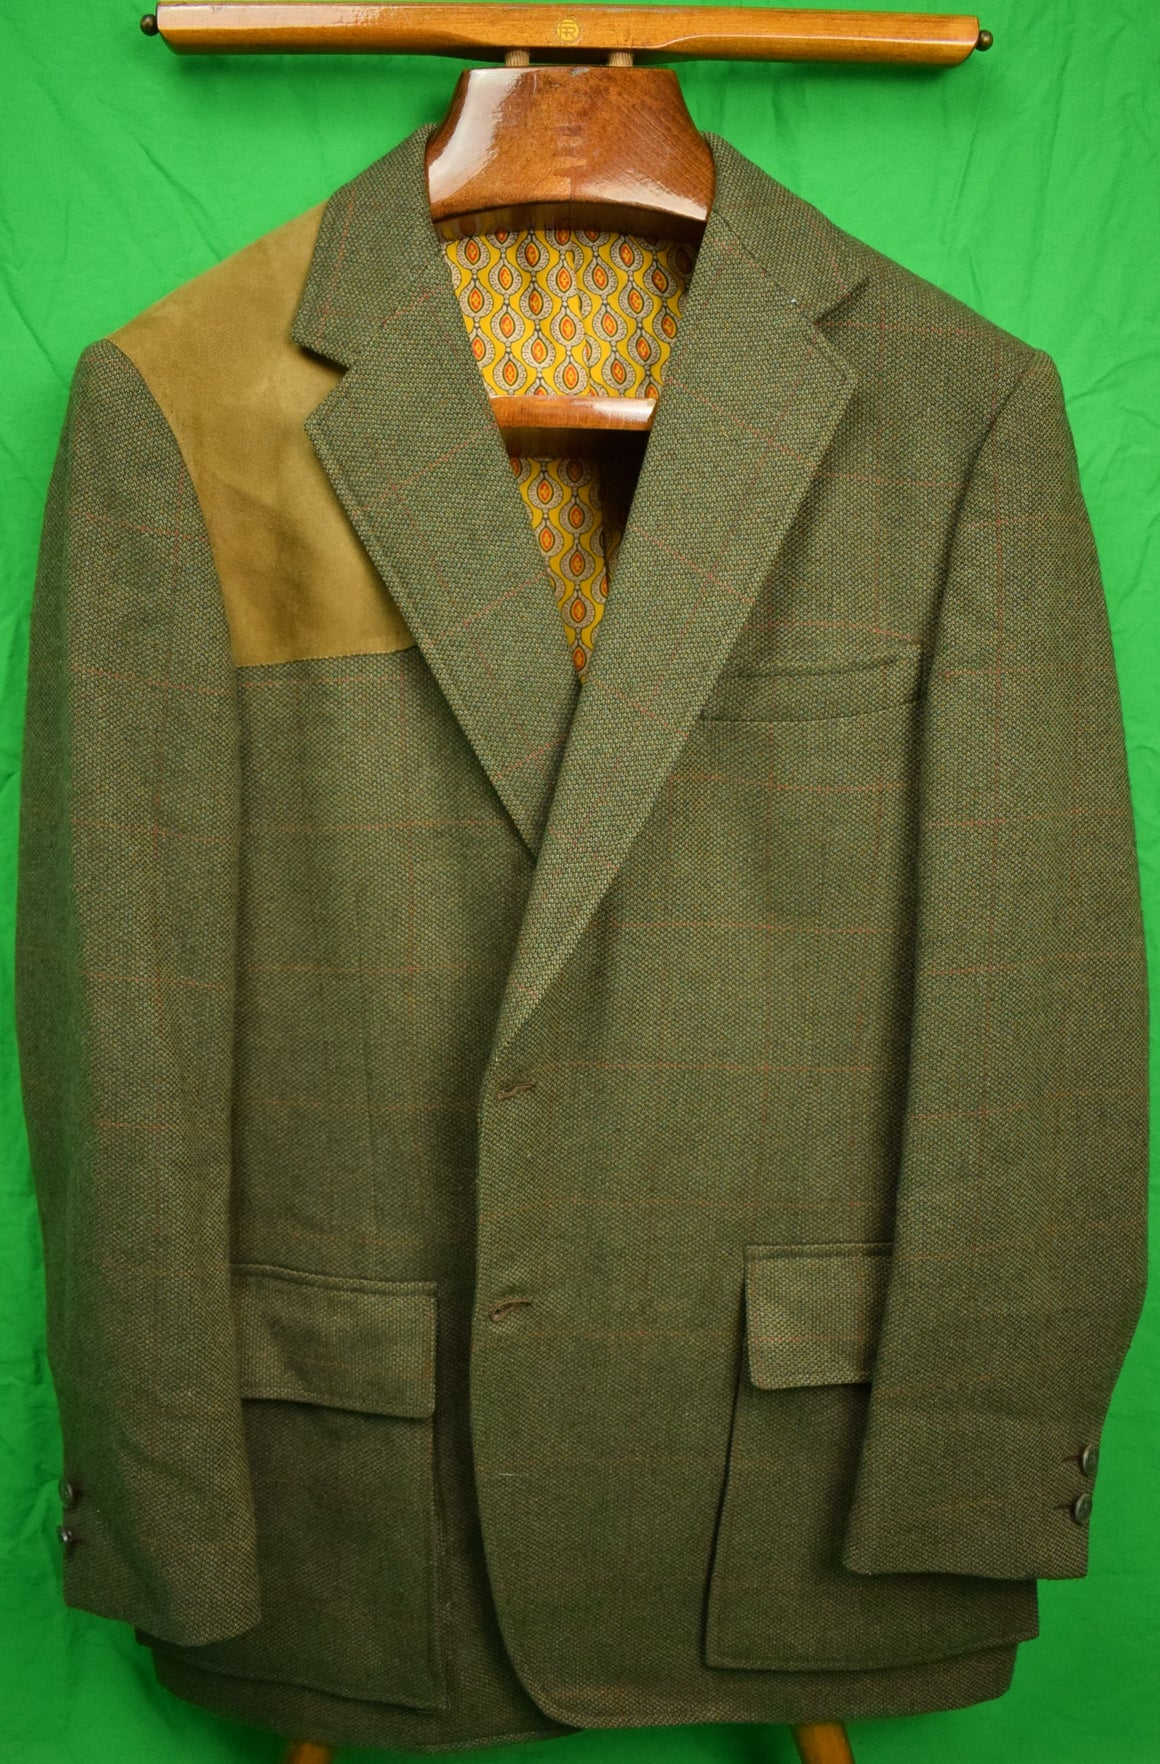 Chipp Tweed Shooting Jacket w/ Suede Shoulder Patch & Foulard Print Lining Sz: 44R